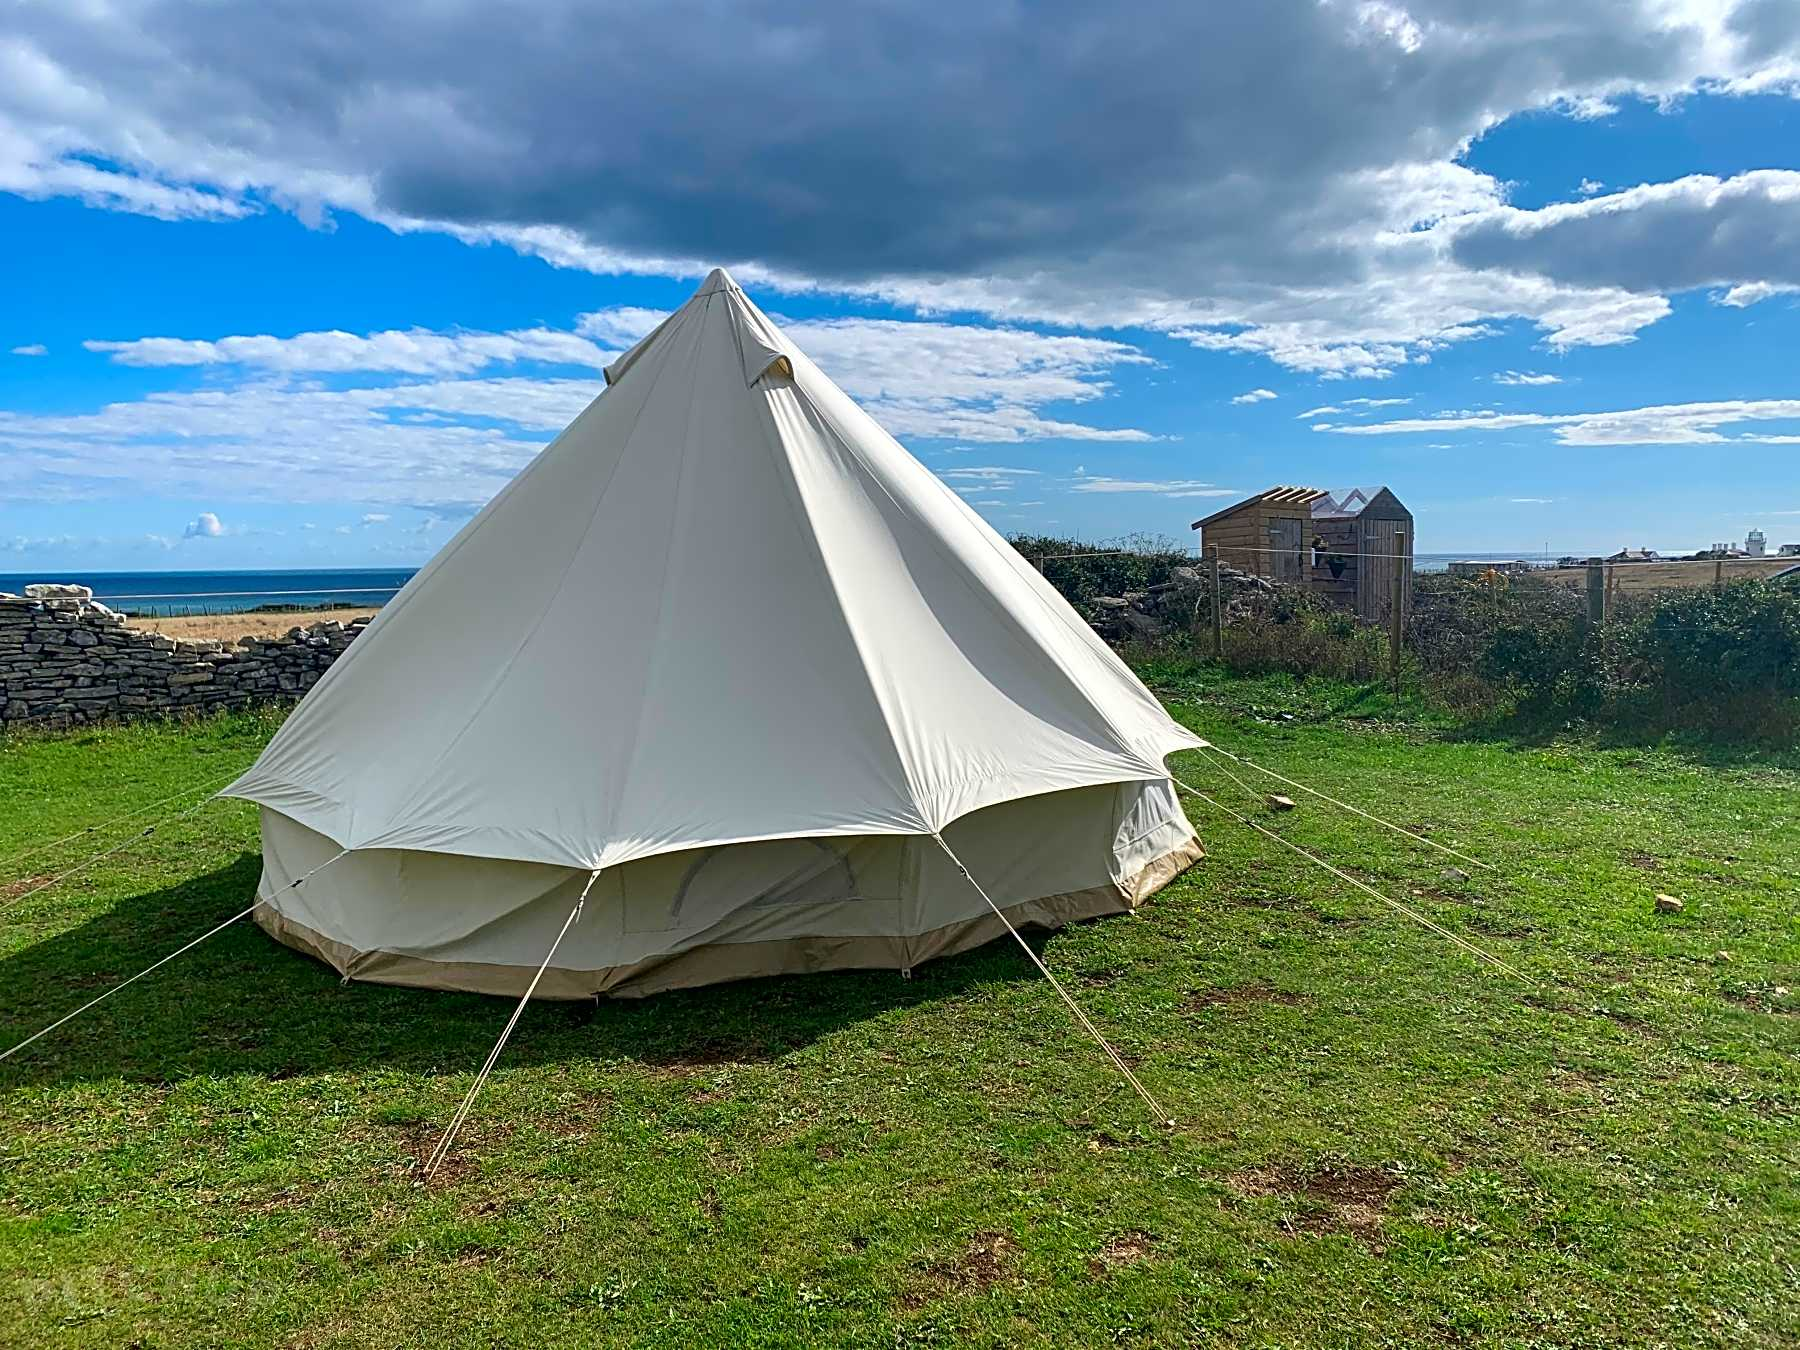 Find Cheap Tent Camping Sites in North